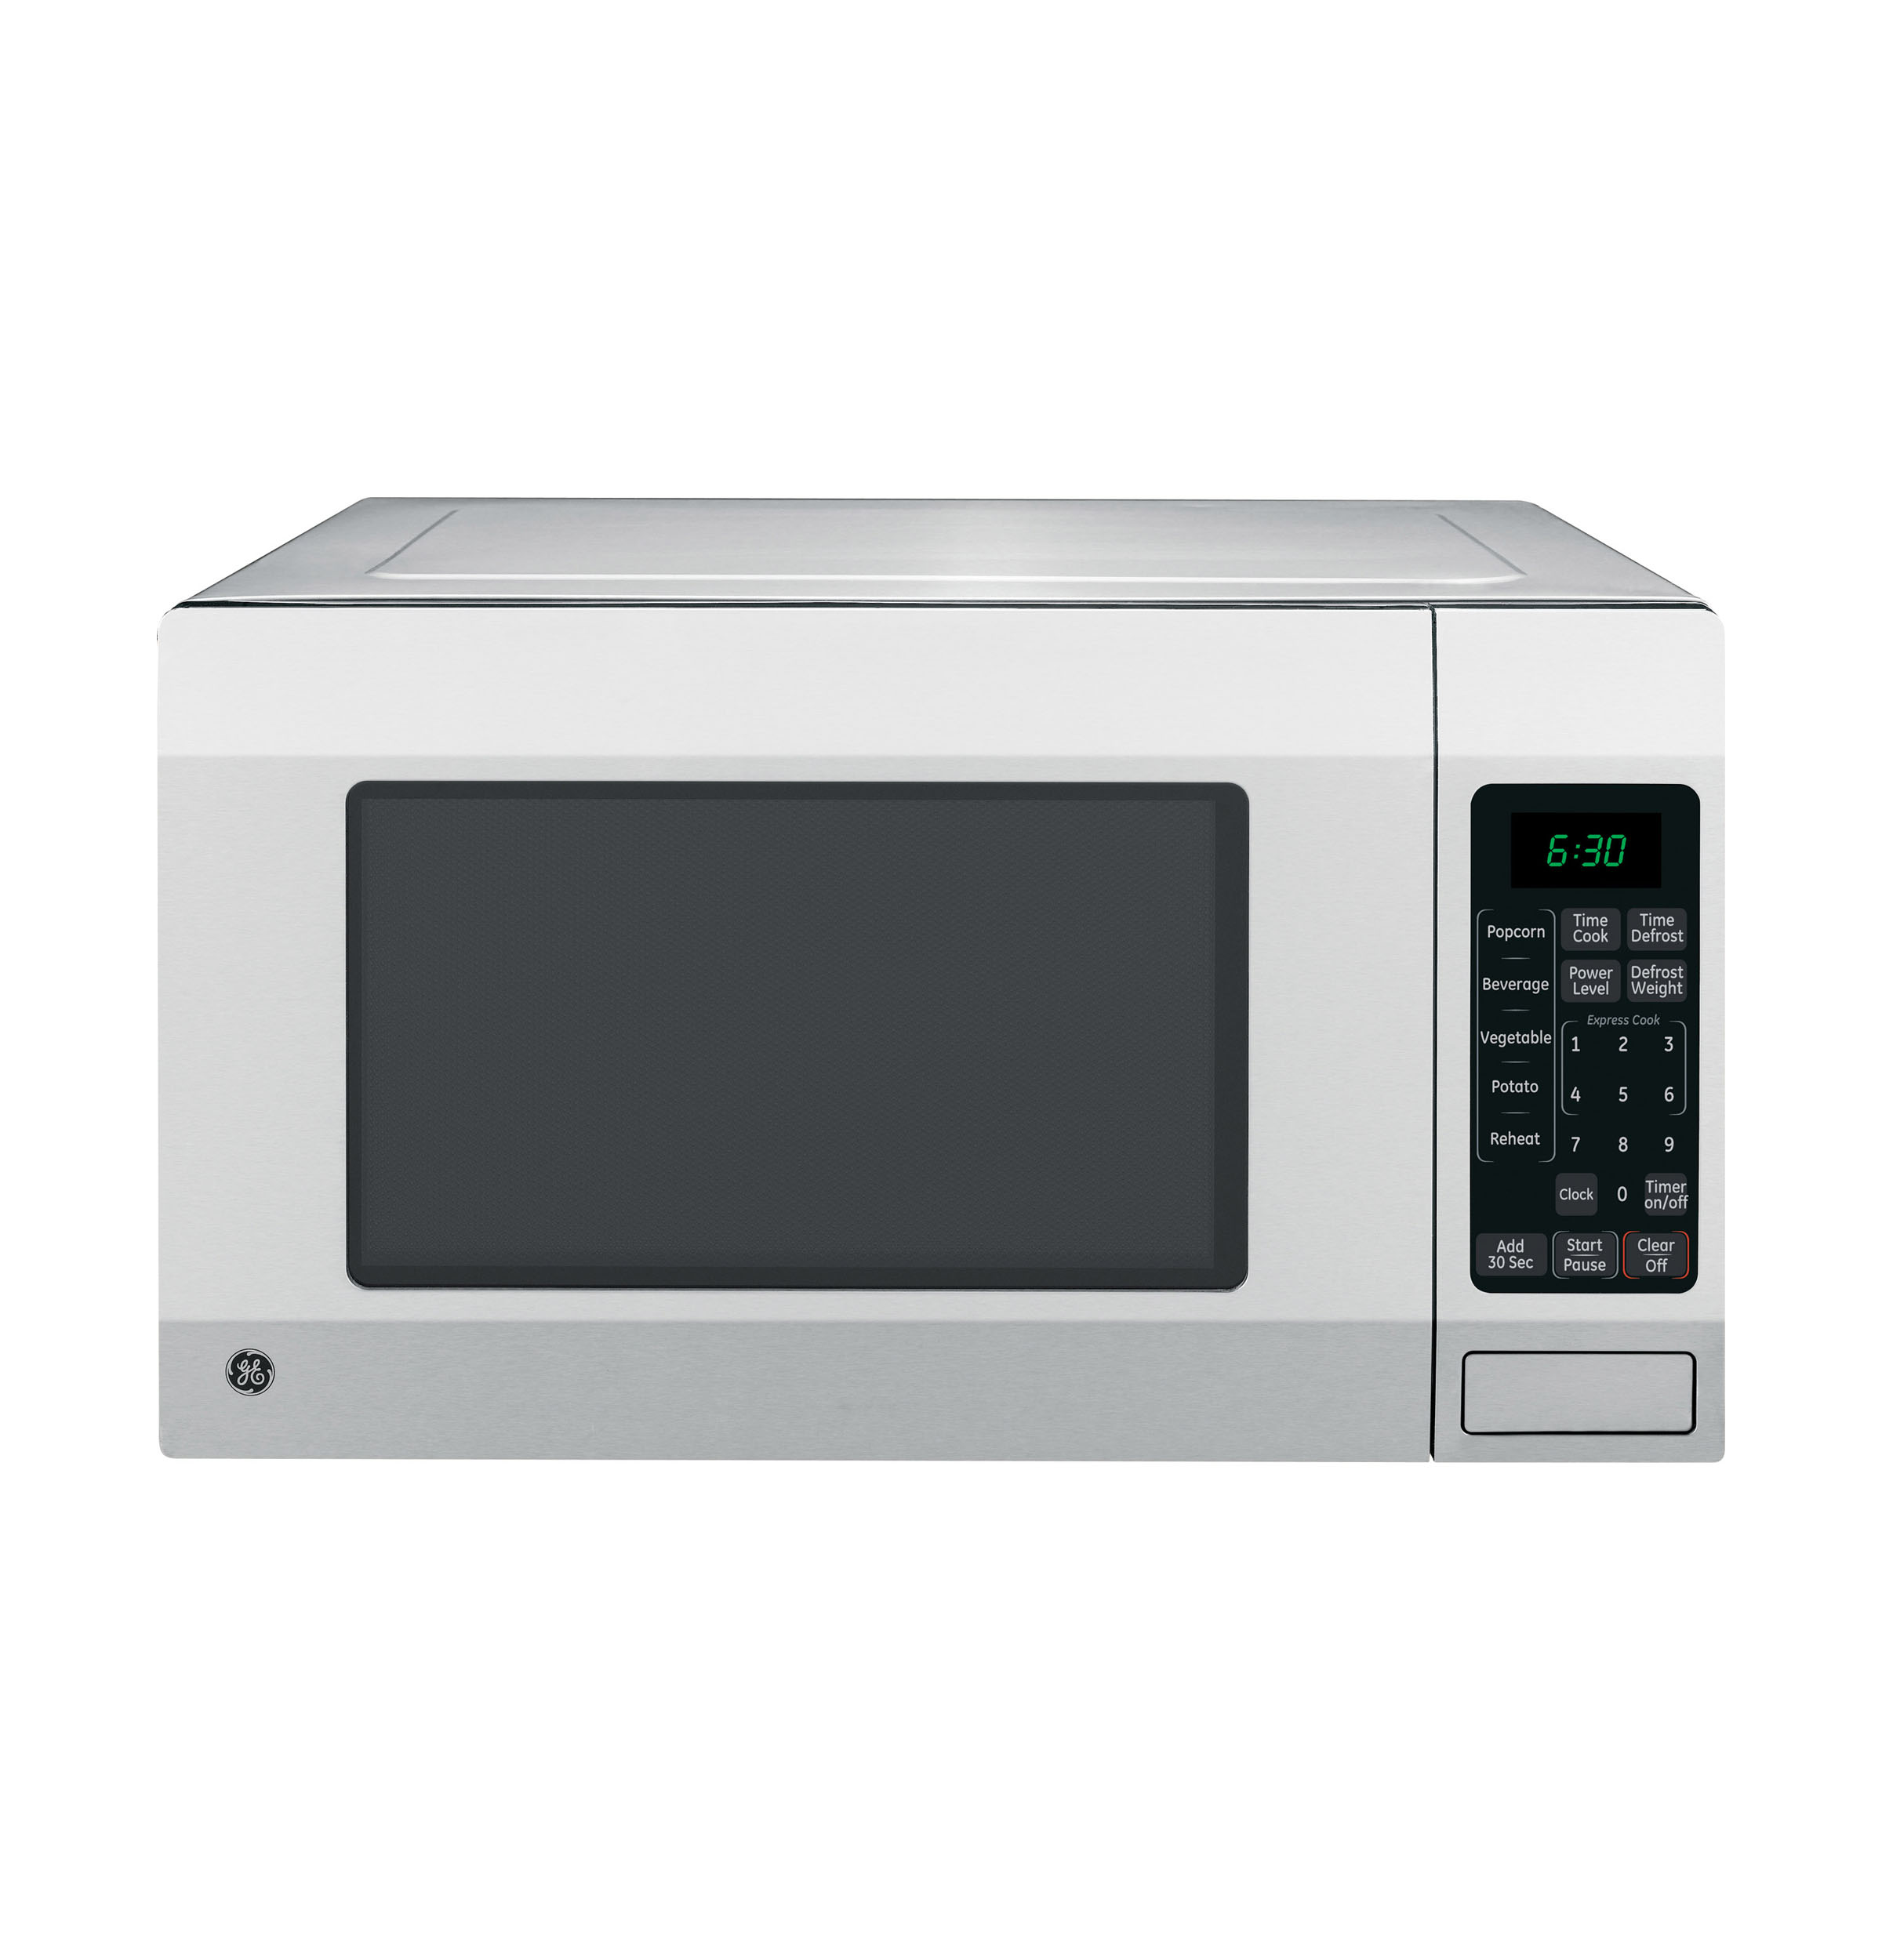 Ge 1 6 Cu Ft Countertop Microwave Oven Stainless